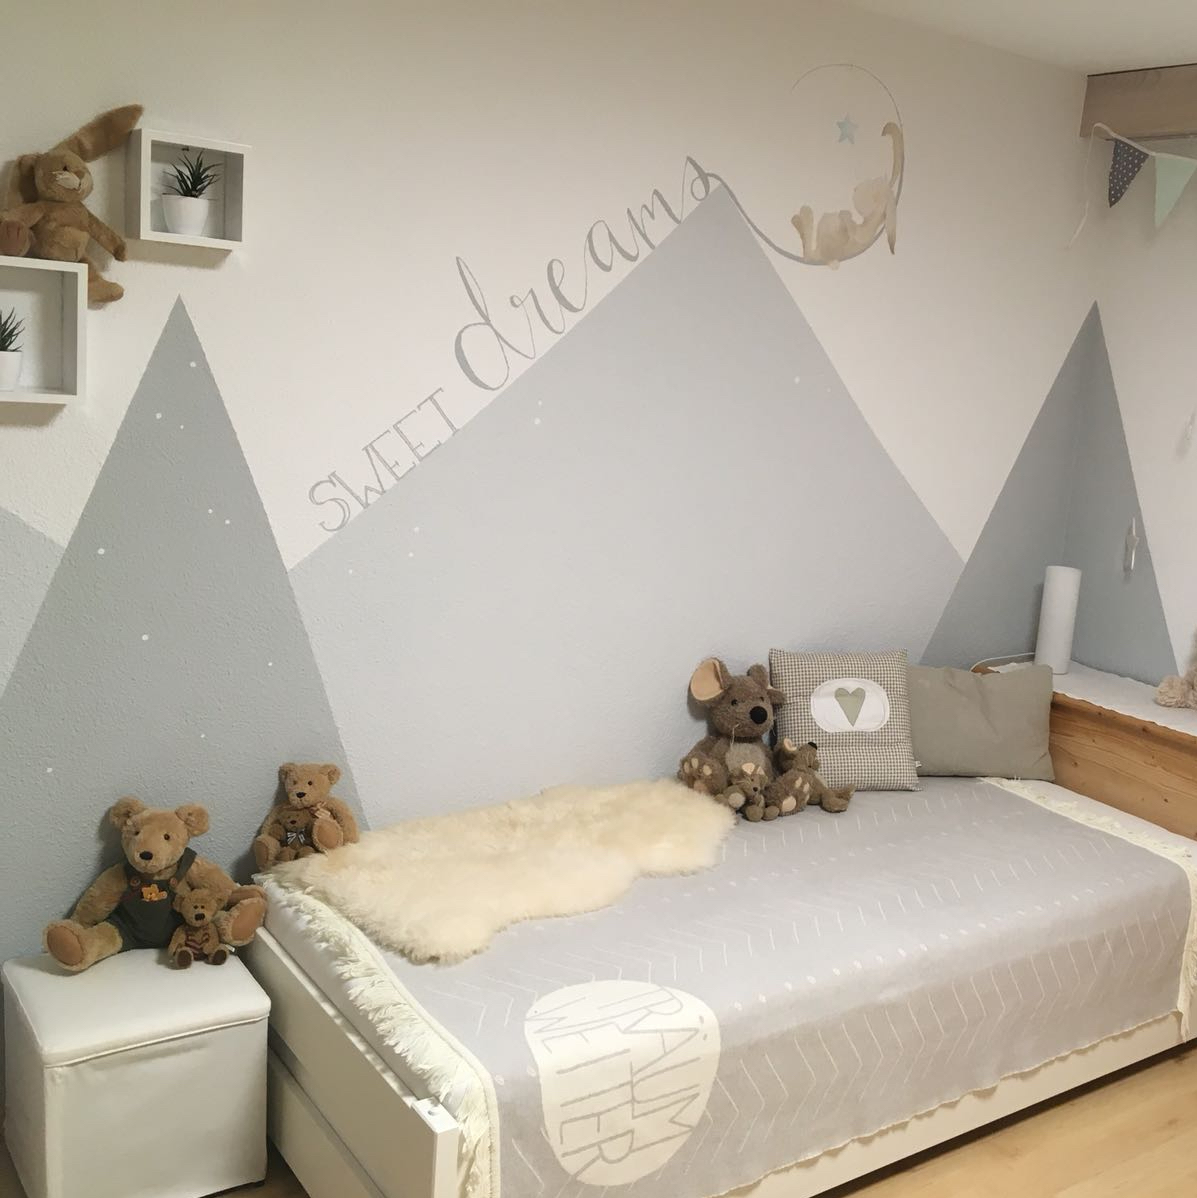 SWEET DREAMS - Wandbemalung Kinderzimmer